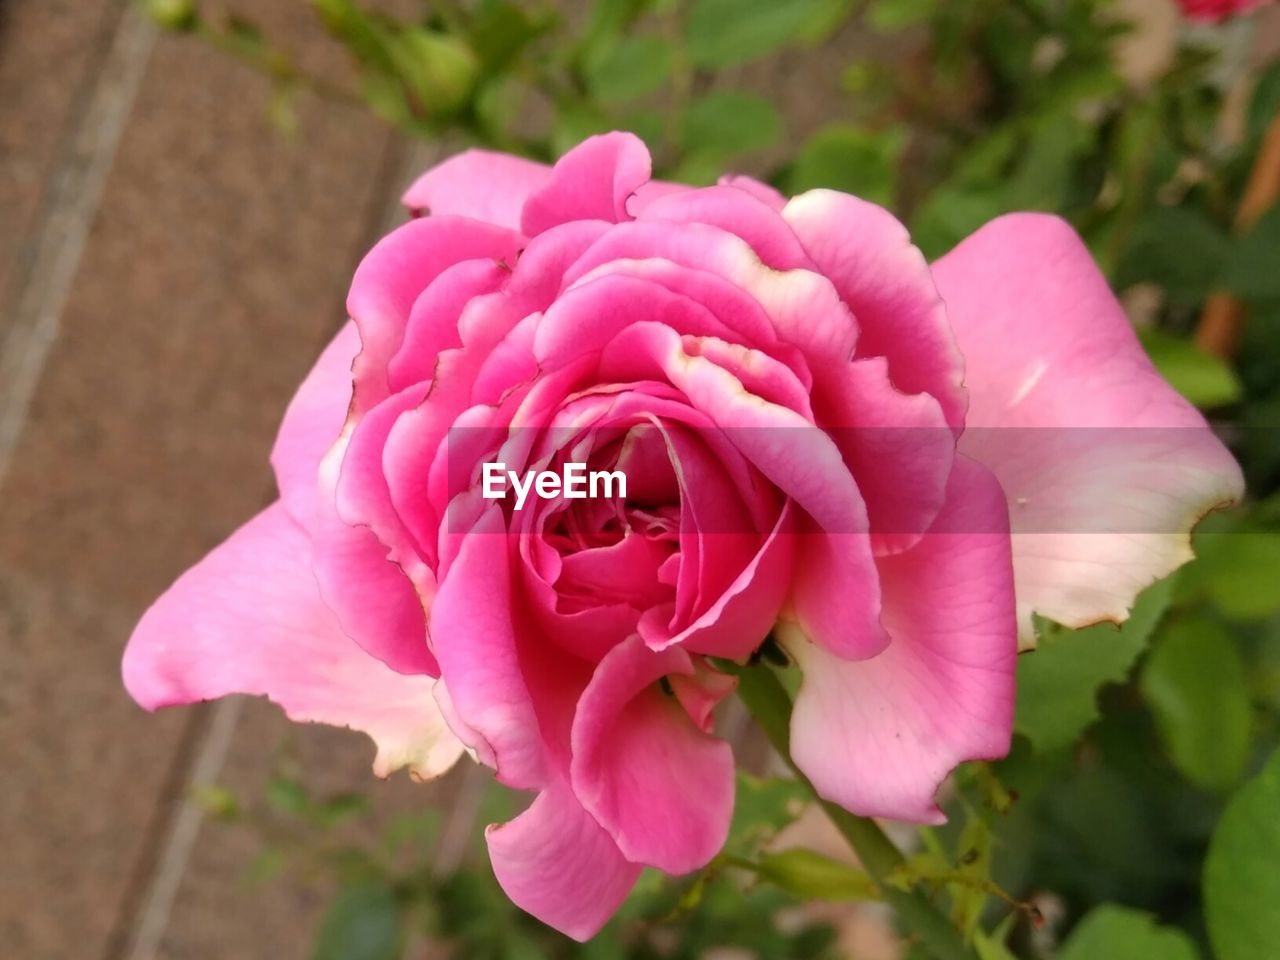 flower, petal, pink color, nature, beauty in nature, flower head, fragility, plant, growth, freshness, no people, focus on foreground, outdoors, close-up, blooming, rose - flower, day